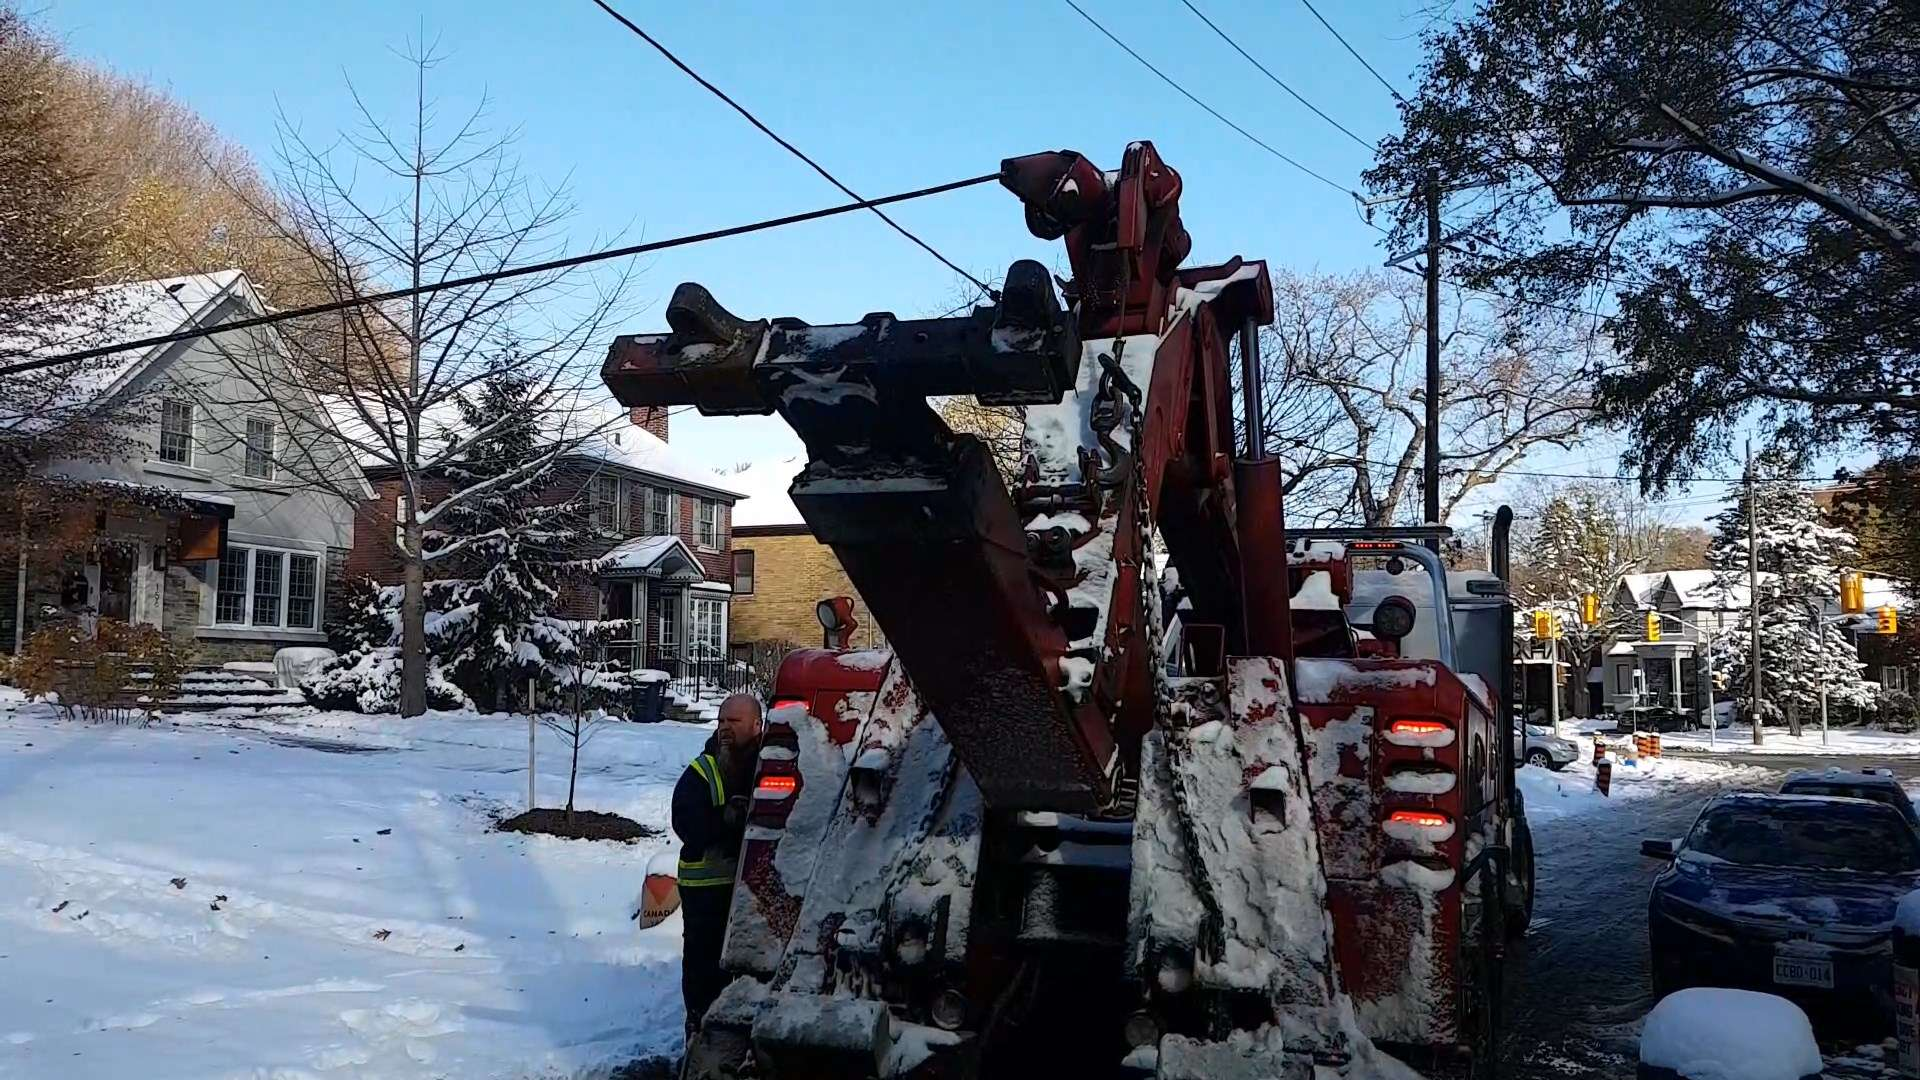 Alan lifts the wrecker to increase cable tension and pull the truck out of the snow